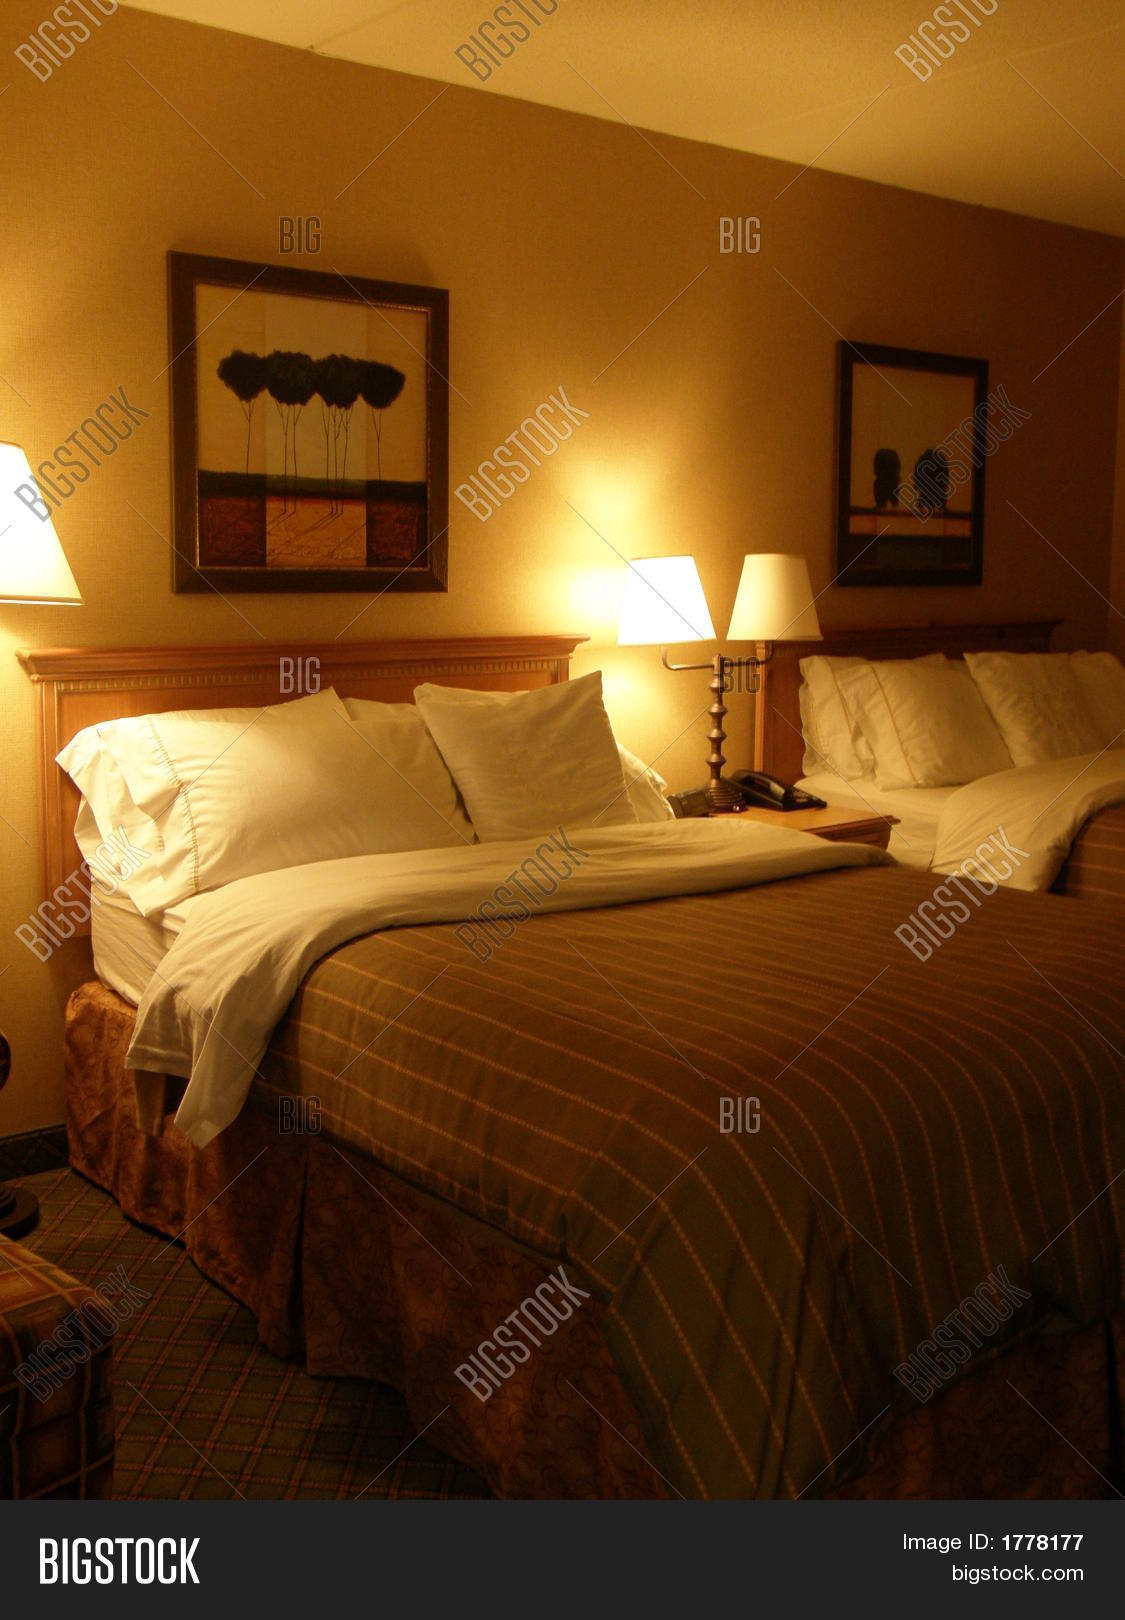 Hotel Room Photography: Dim-Lit Hotel Room Image & Photo (Free Trial)